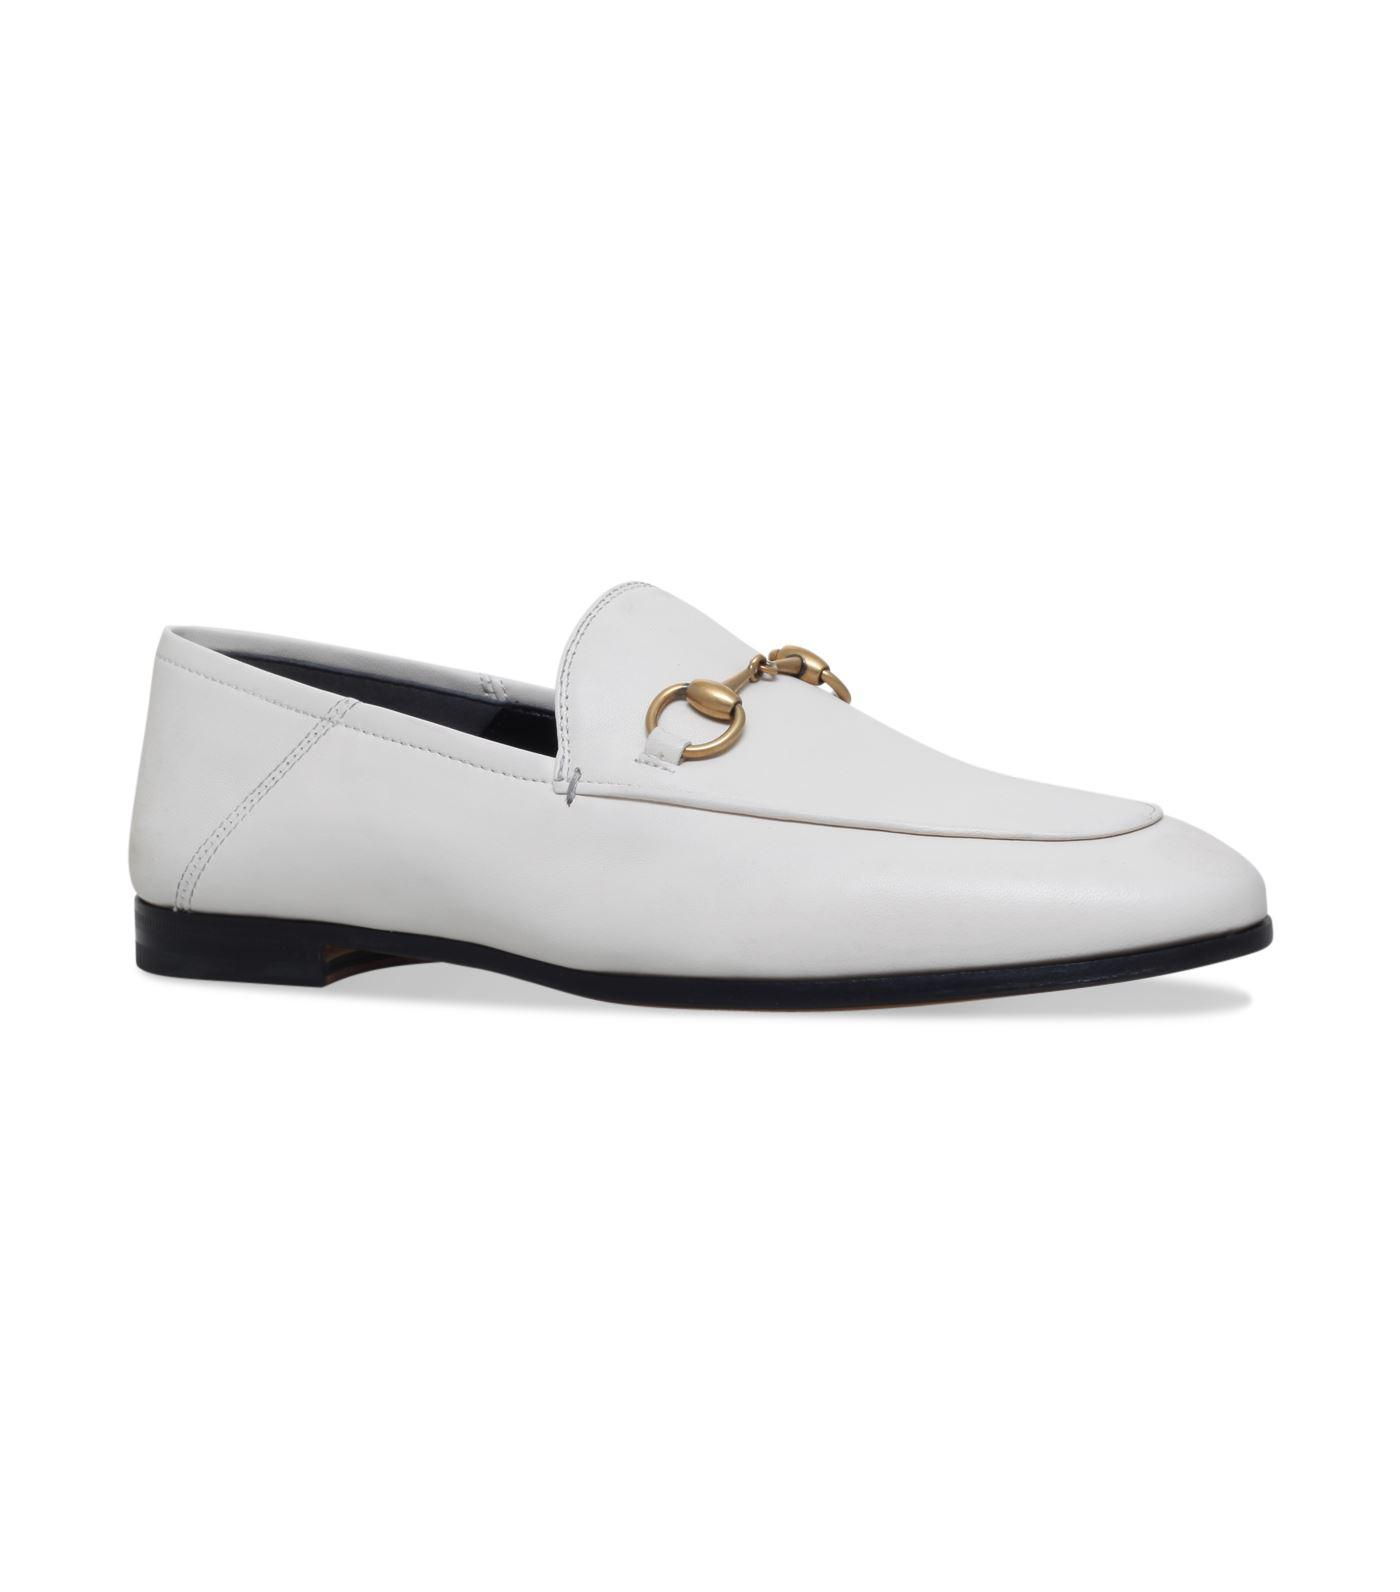 2875d040b21 Gucci Brixton Horsebit Loafers in White - Lyst